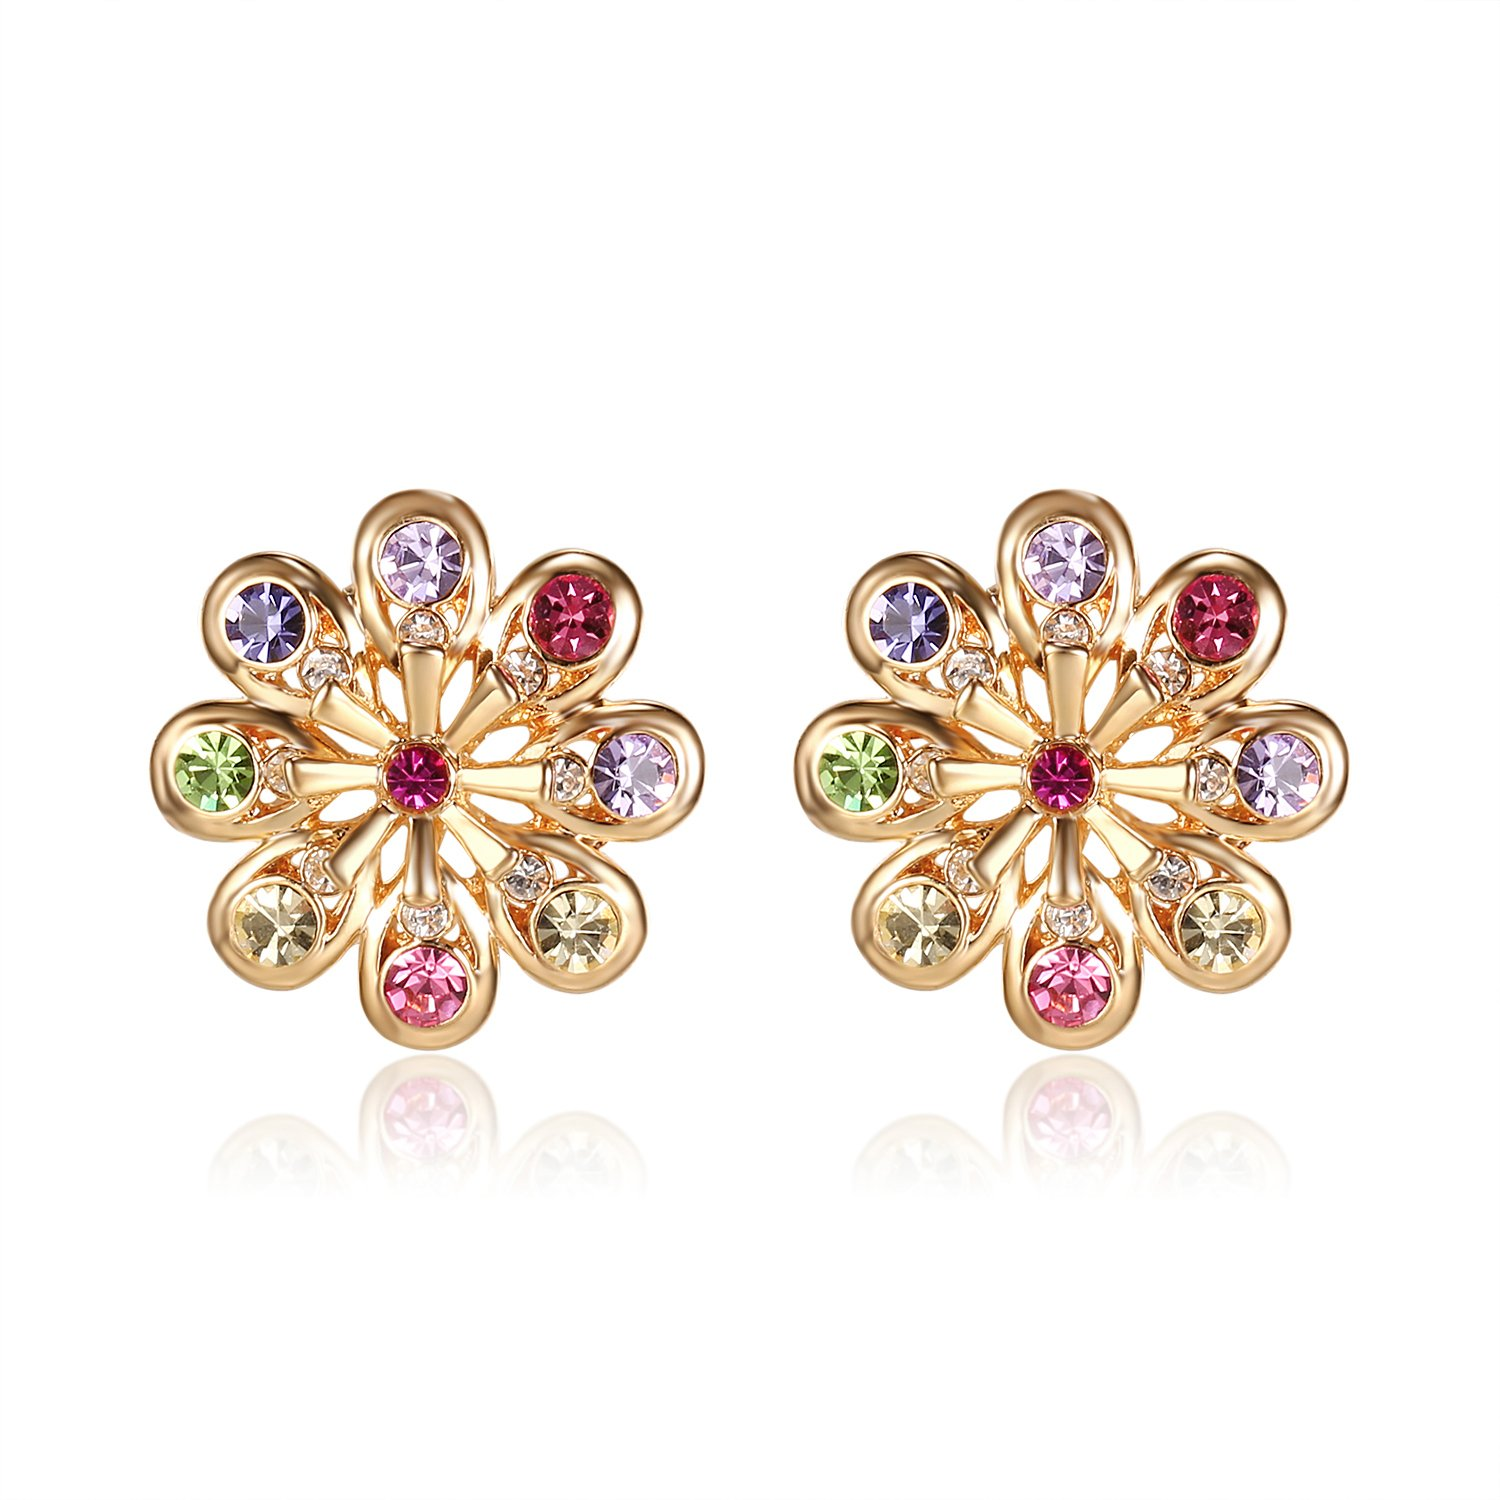 Lee Island Fashion Jewelry 18K Gold Plated Austrian Crystal Flower Stud Shape Earrings Woman Girl Gift-Gift Packing (Multicolor)